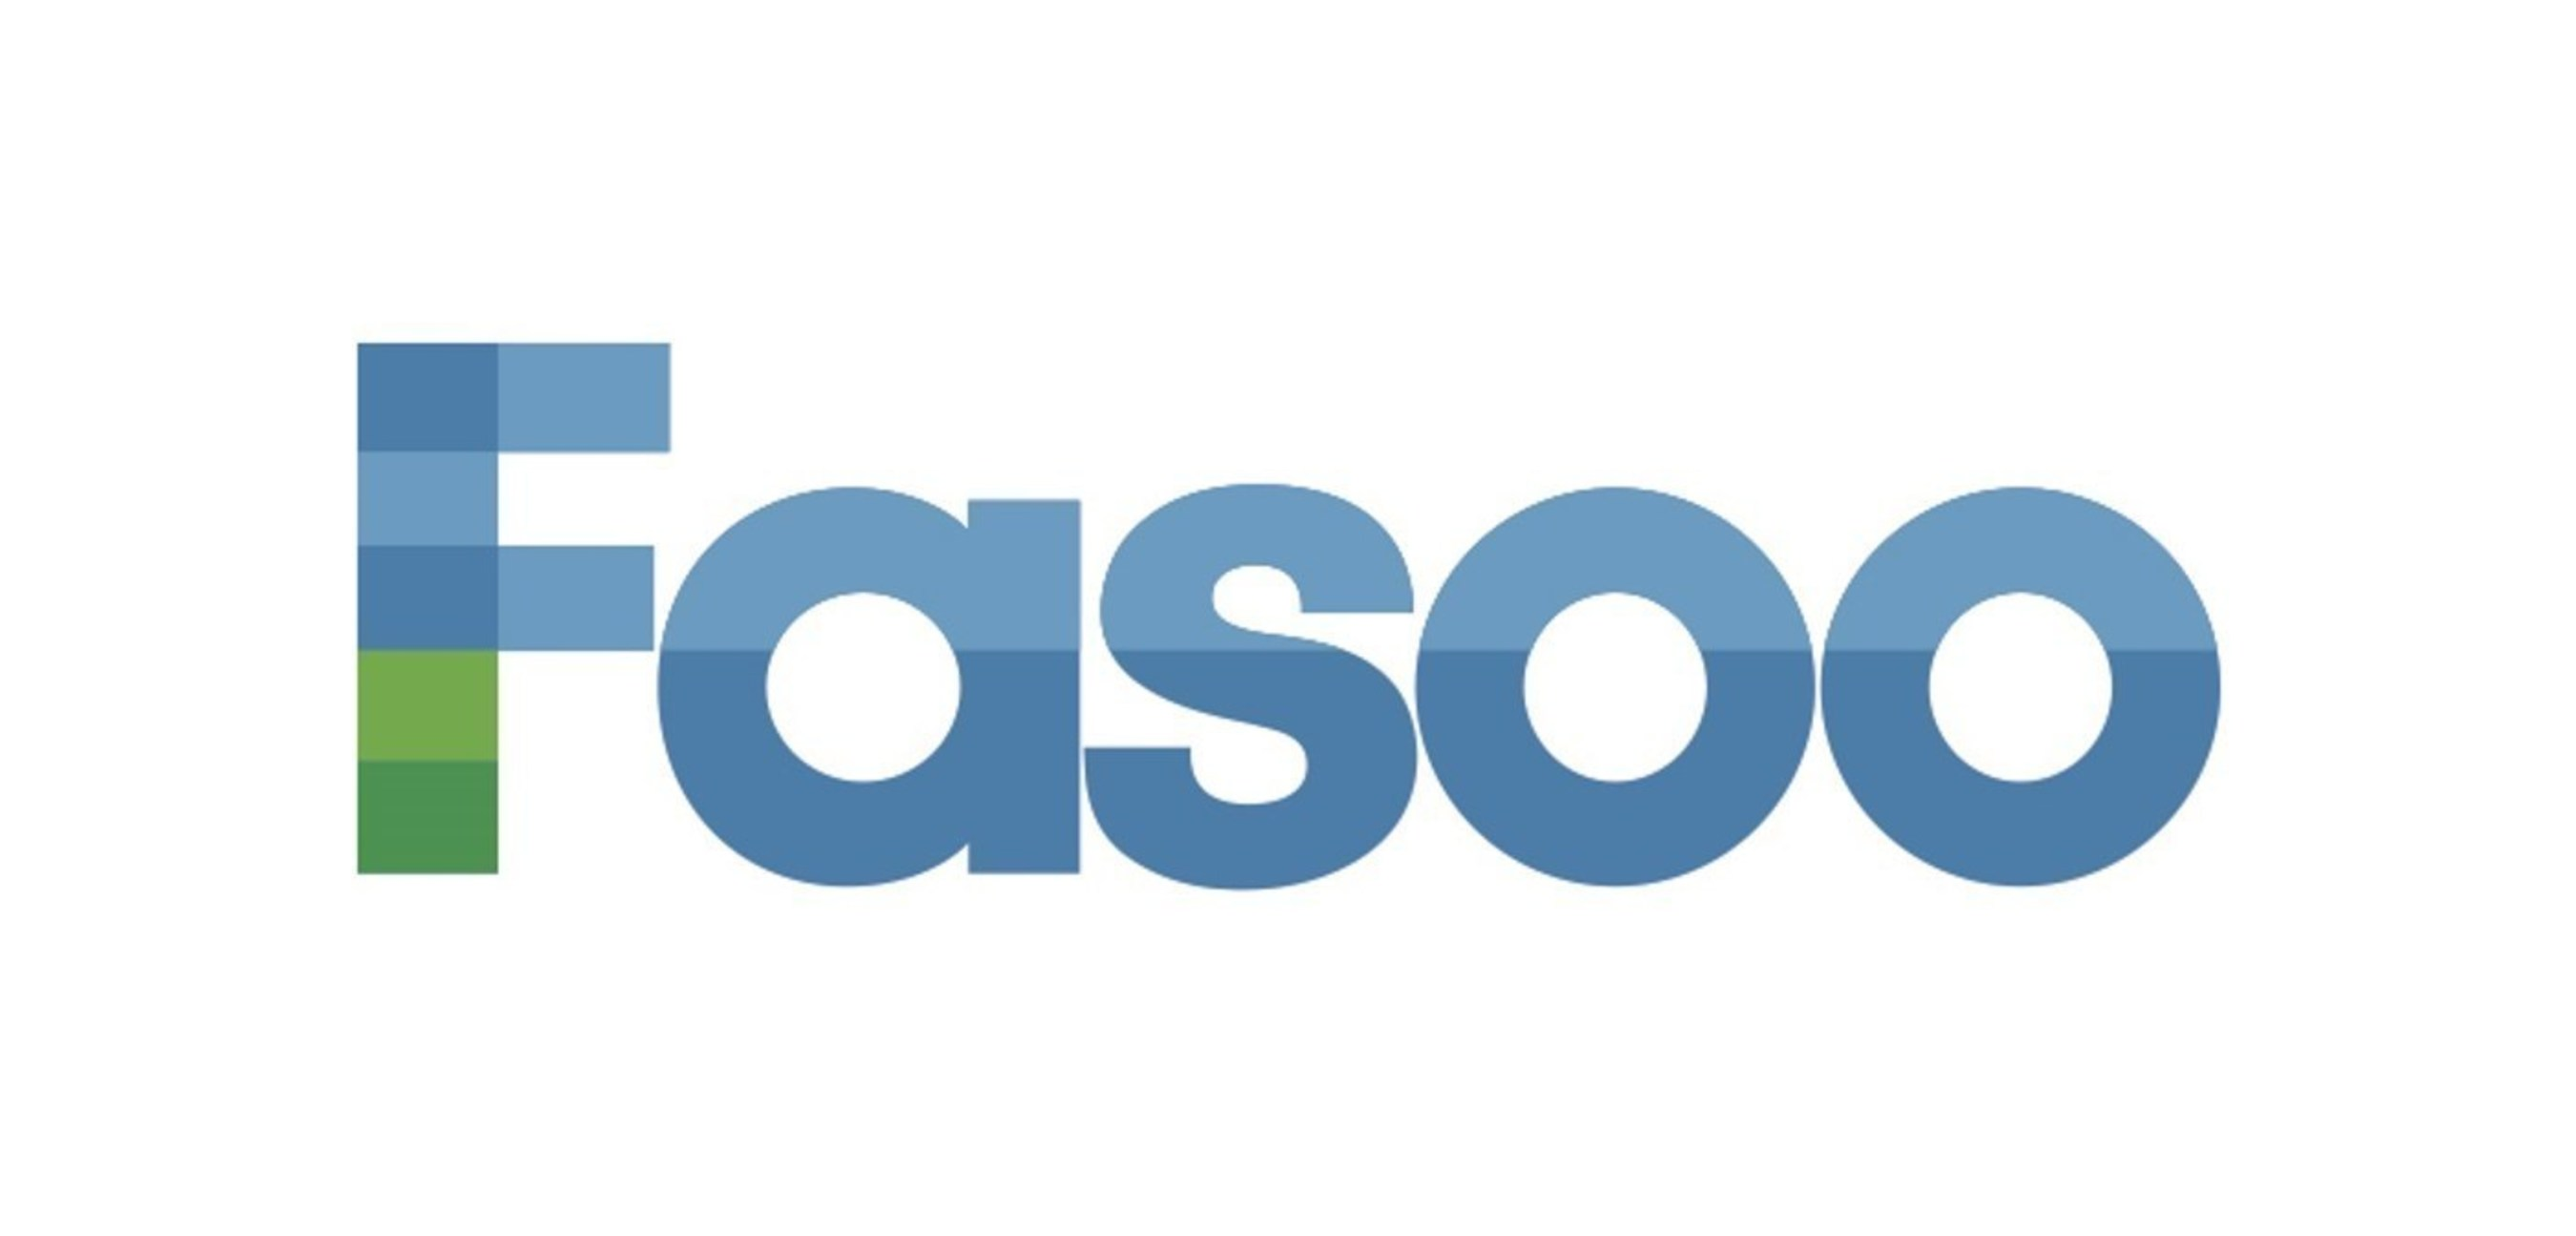 Fasoo provides software to protect and manage your valuable assets in the ever changing digital world. Since 2000, Fasoo has helped customers create a secure information sharing environment and simplified secure collaboration internally and externally. For more information on Fasoo please visit:  http://www.fasoo.com . (PRNewsFoto/Fasoo)